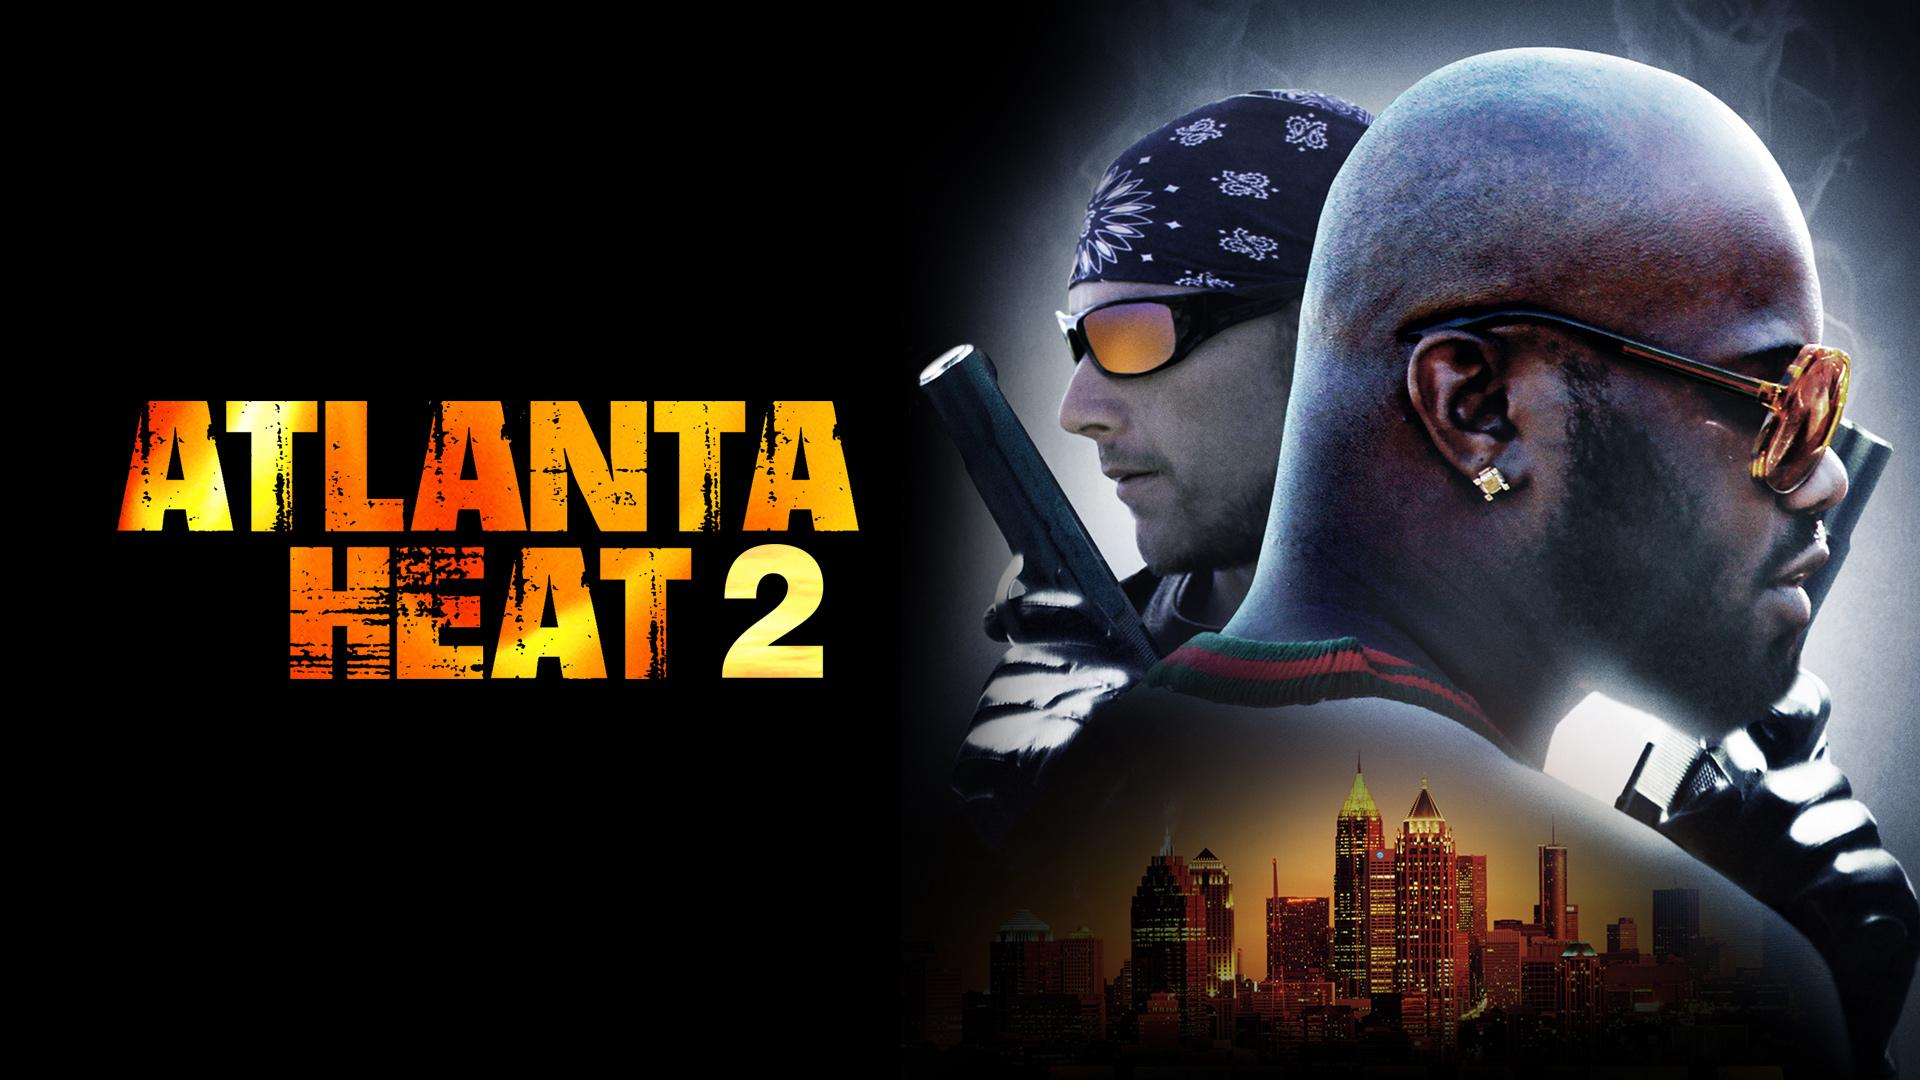 Atlanta Heat 2 - Action/Thriller category image